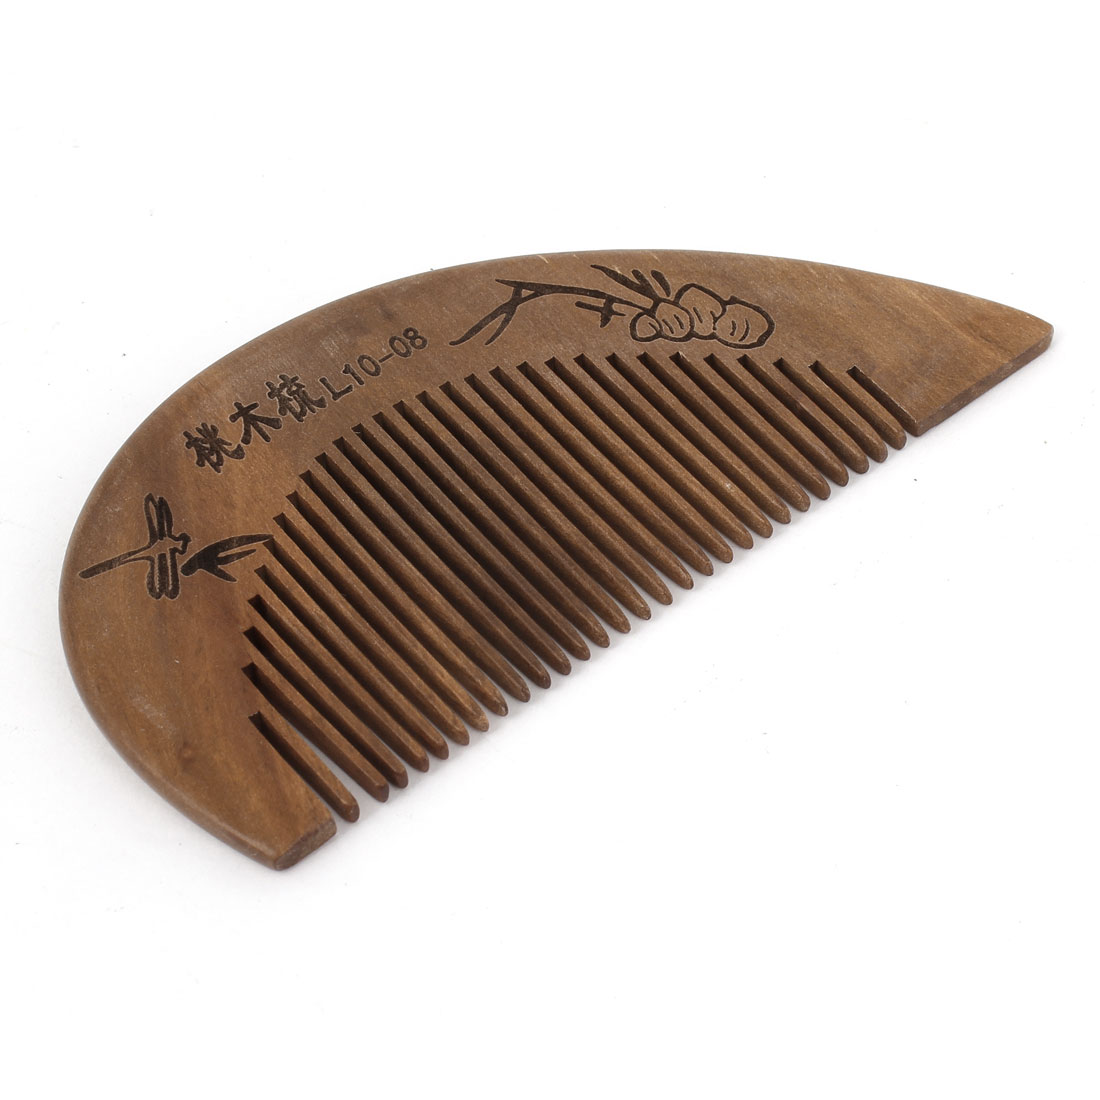 "4"" Length Handwork Carved Wood Narrow Tooth Hair Care Comb for Unisex"